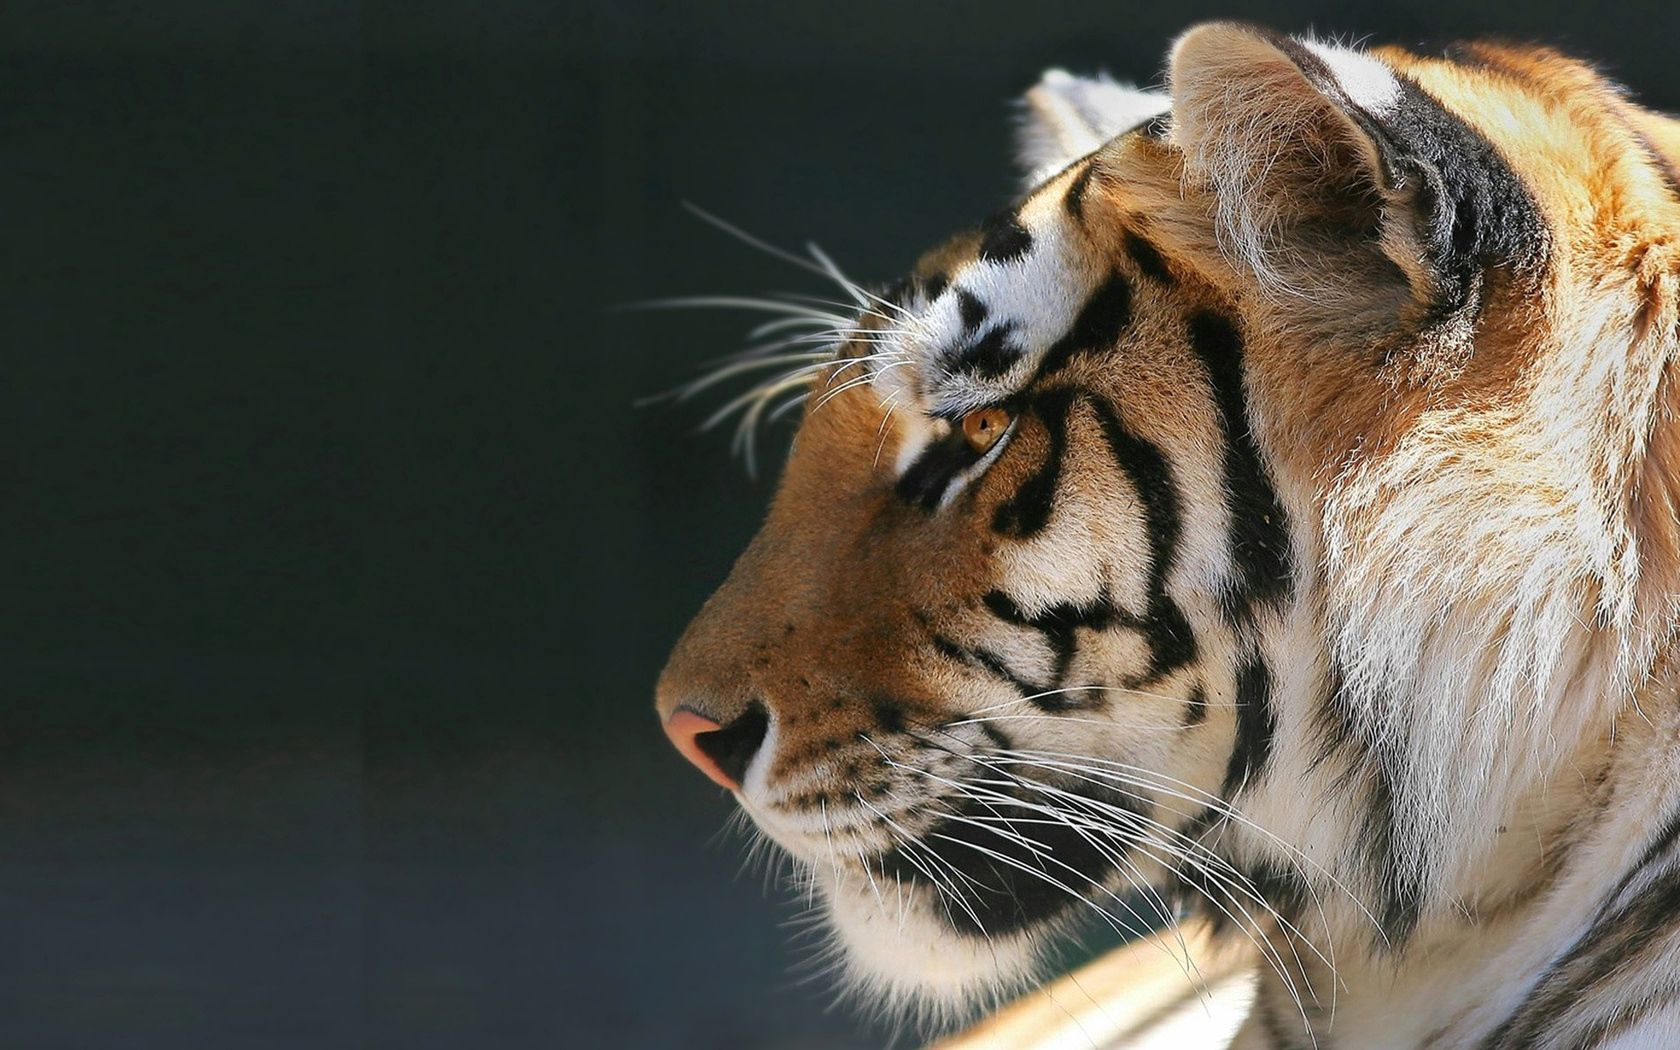 121445 download wallpaper Animals, Tiger, Calmness, Tranquillity, Animal, Predator screensavers and pictures for free